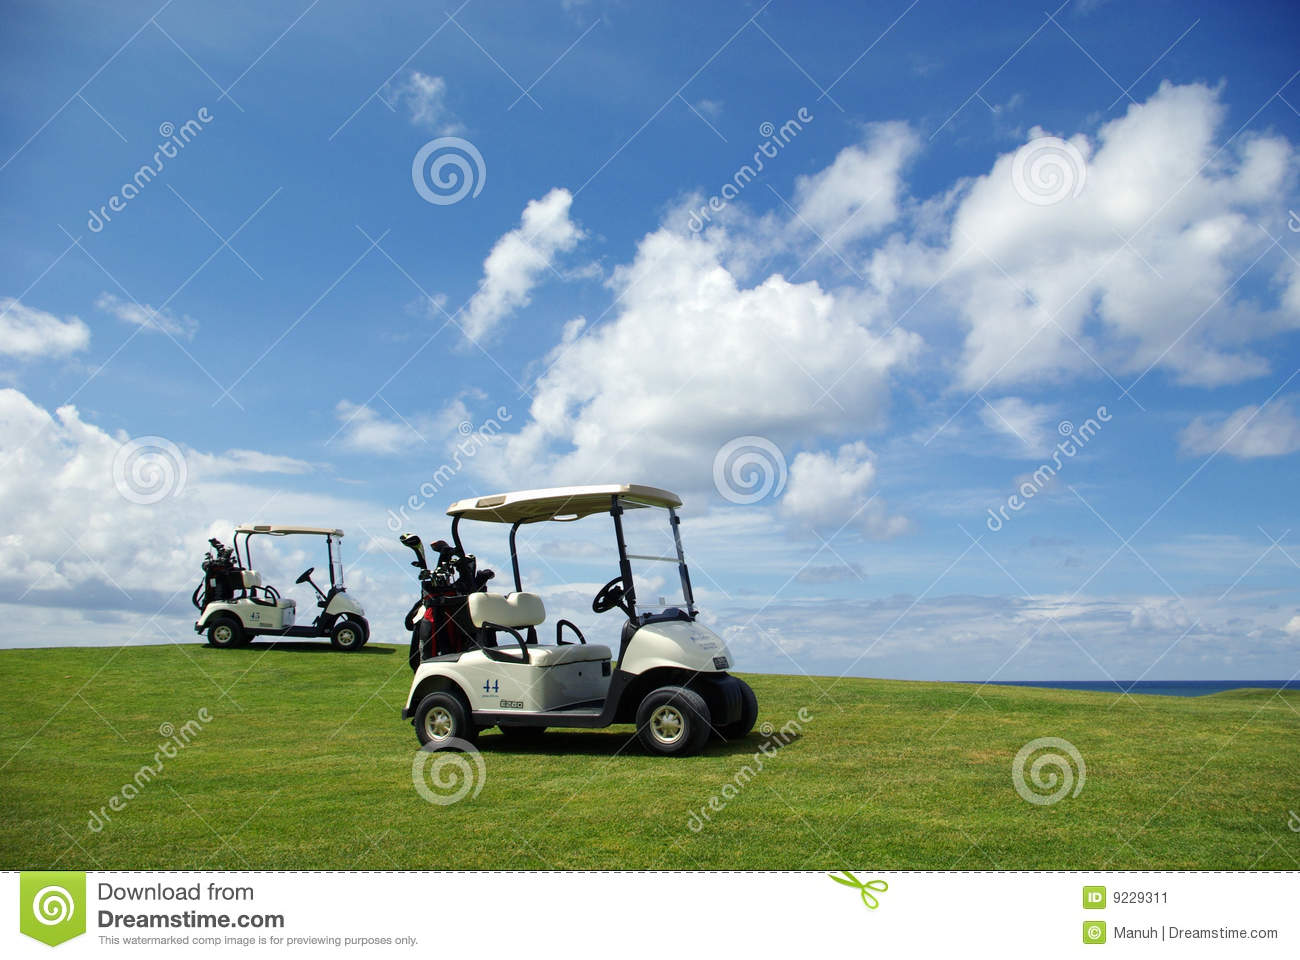 Golf Wallpaper Stock Image Image Of Blue Play Golf 9229311